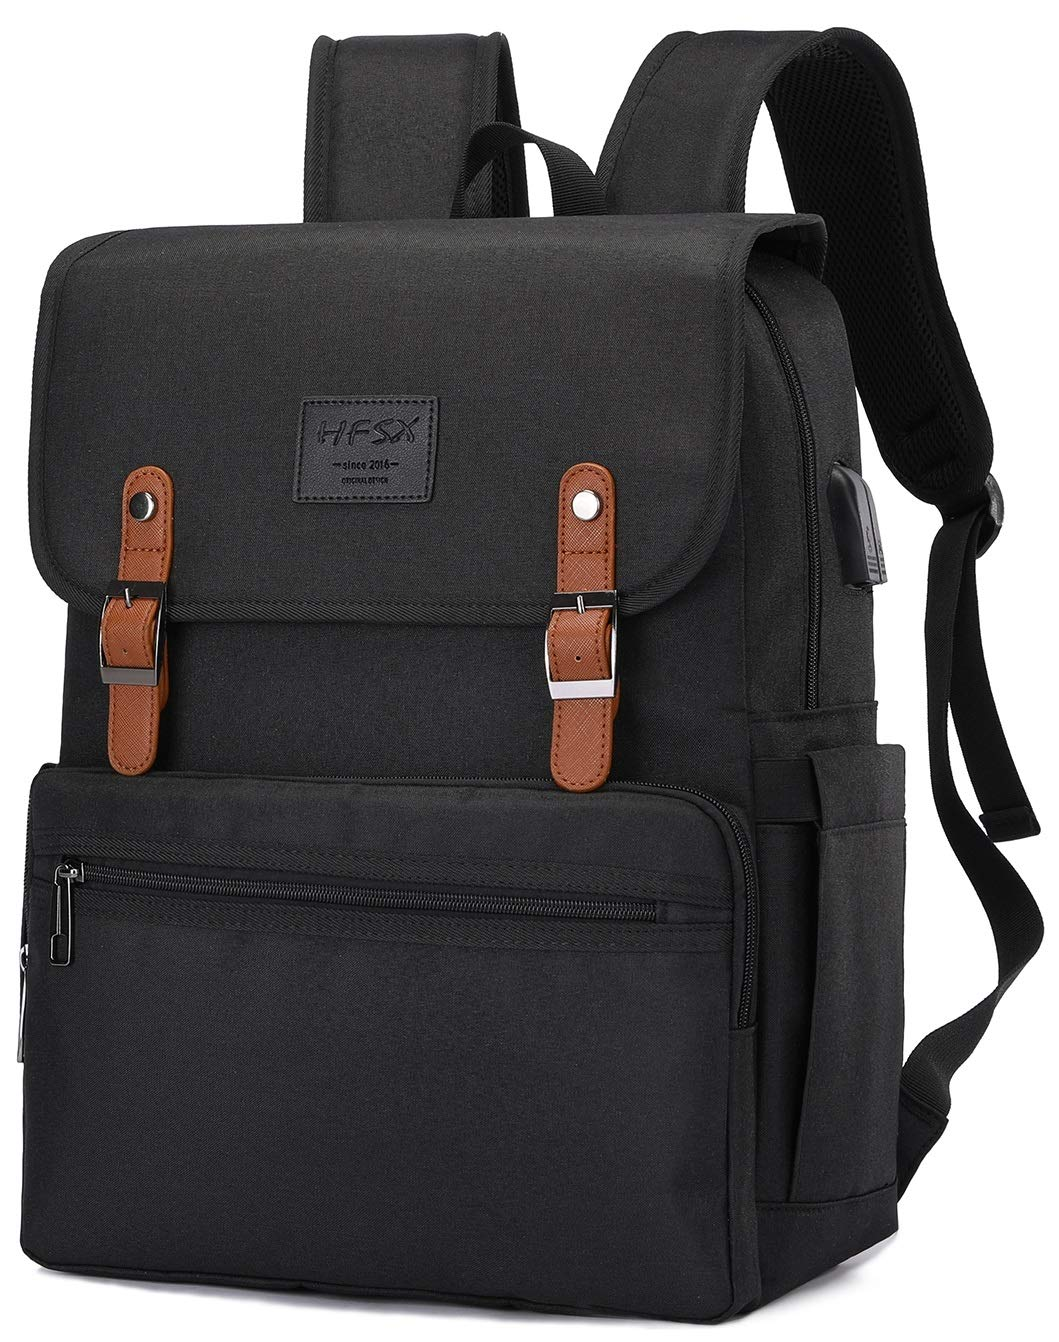 709adccb3745 Anti Theft Laptop Backpack Men Women Business Travel Computer Backpack  School College Bookbag Stylish Water Resistant Vintage Backpack with USB  Port ...